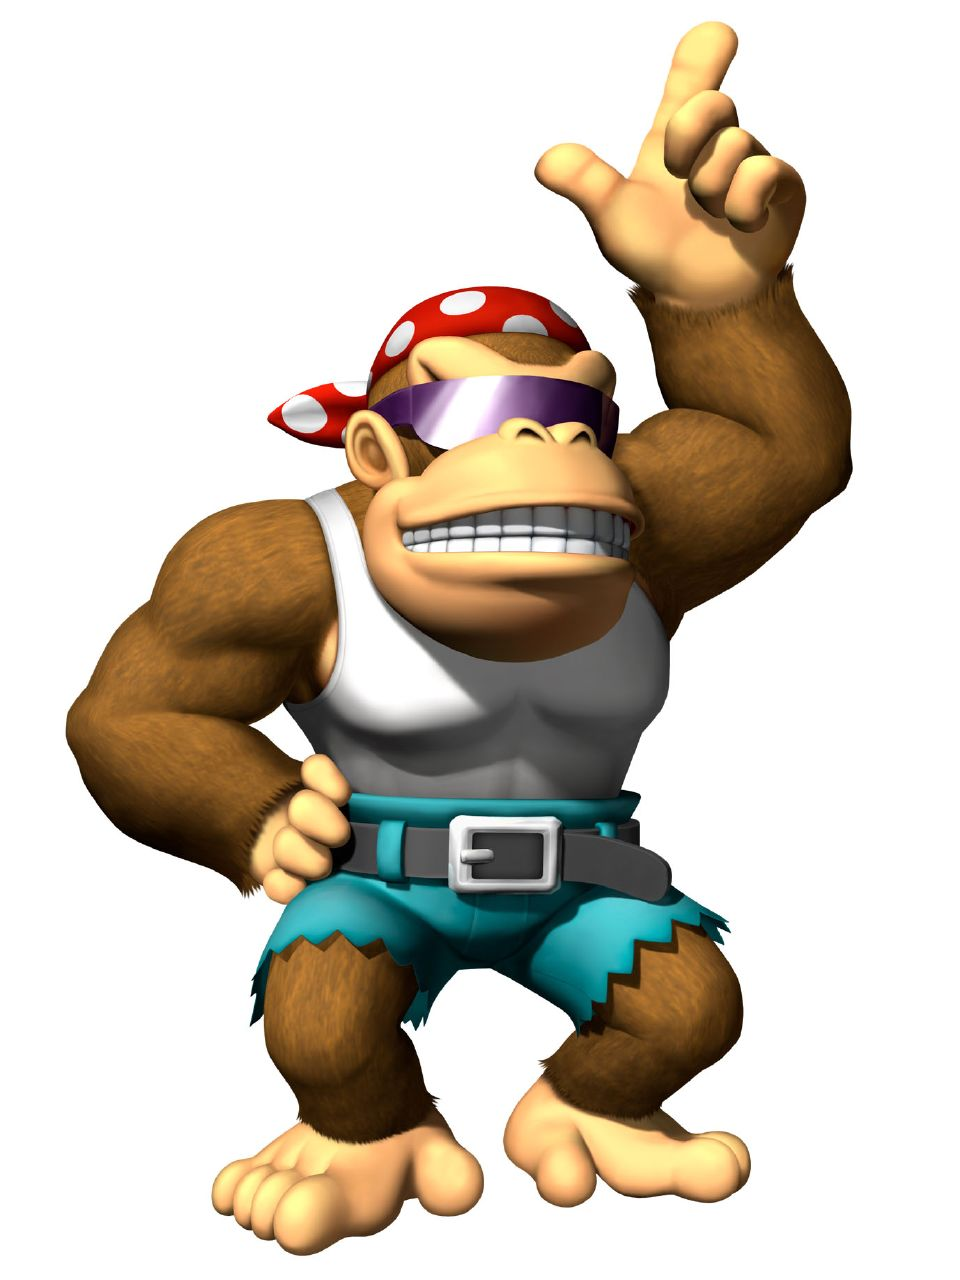 (Updated) Funky Kong announced for Donkey Kong Country: Tropical Freeze